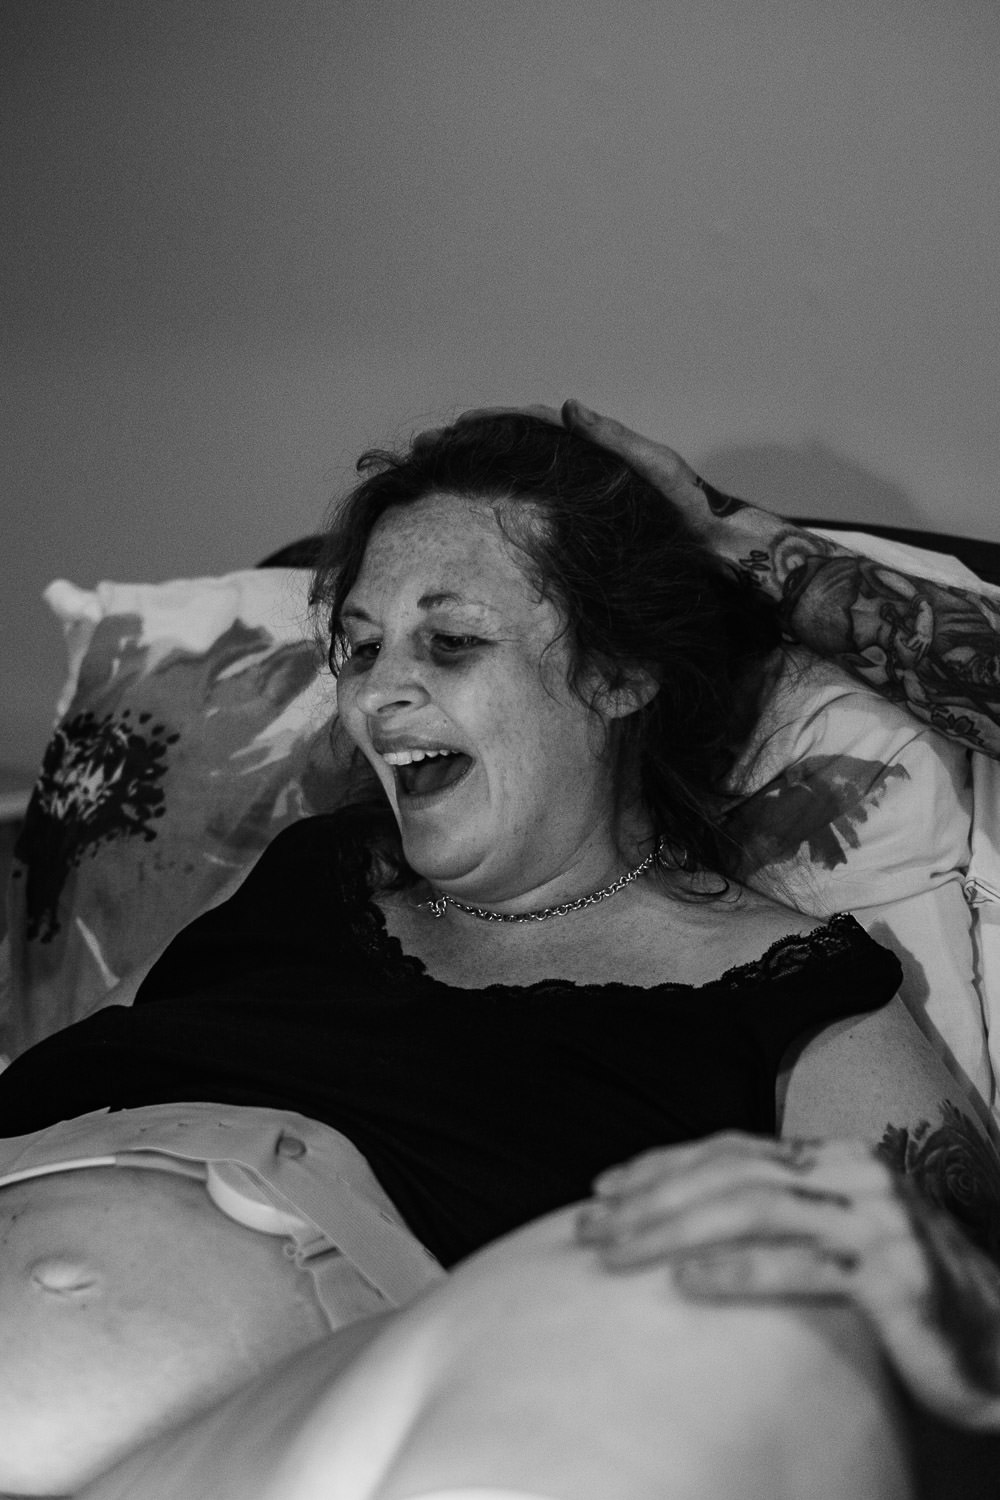 The look of pure elation on mothers face as she sees her newborn for the first time.